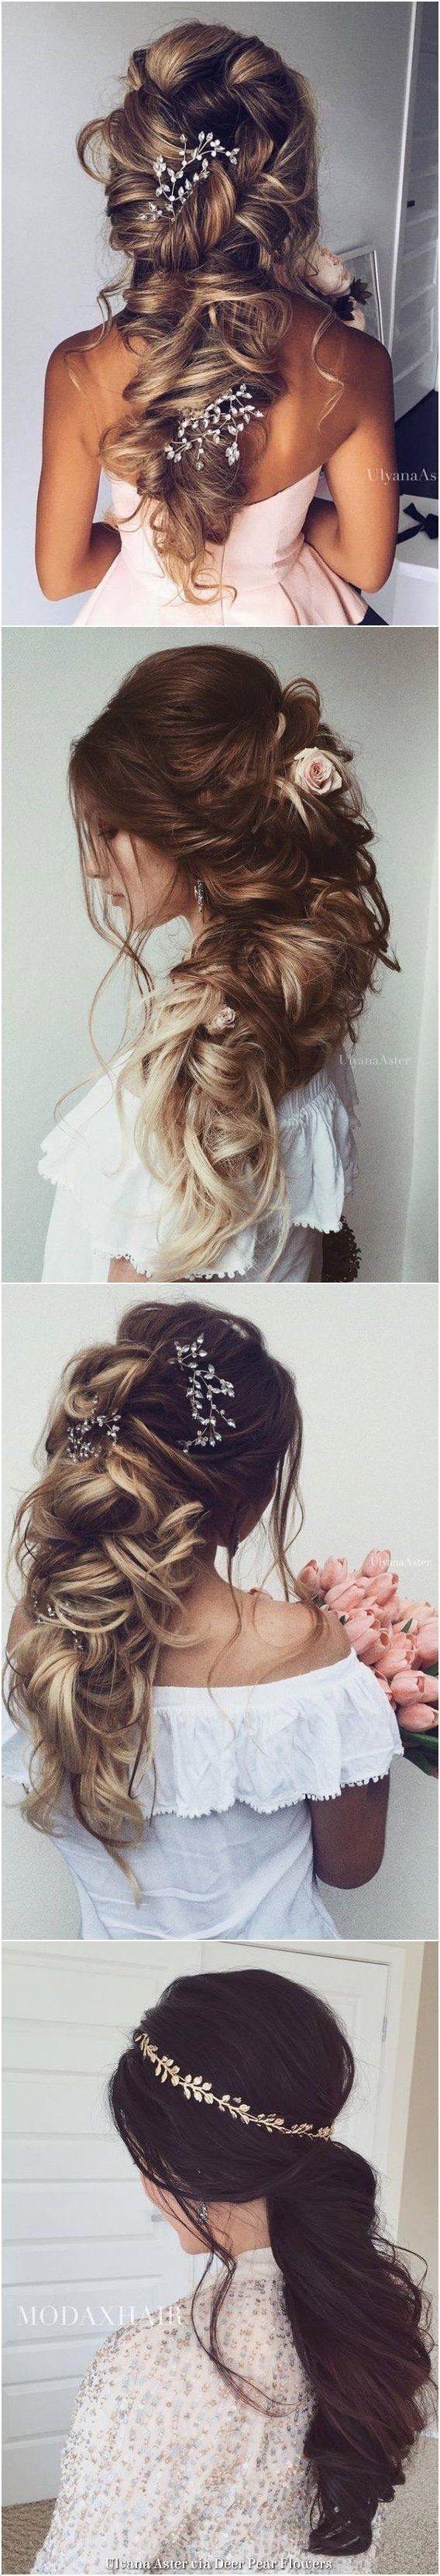 Ulyana Aster Long Wedding Hairstyles & Updos / http://www.deerpearlflowers.com/romantic-bridal-wedding-hairstyles/ #weddinghairstyles